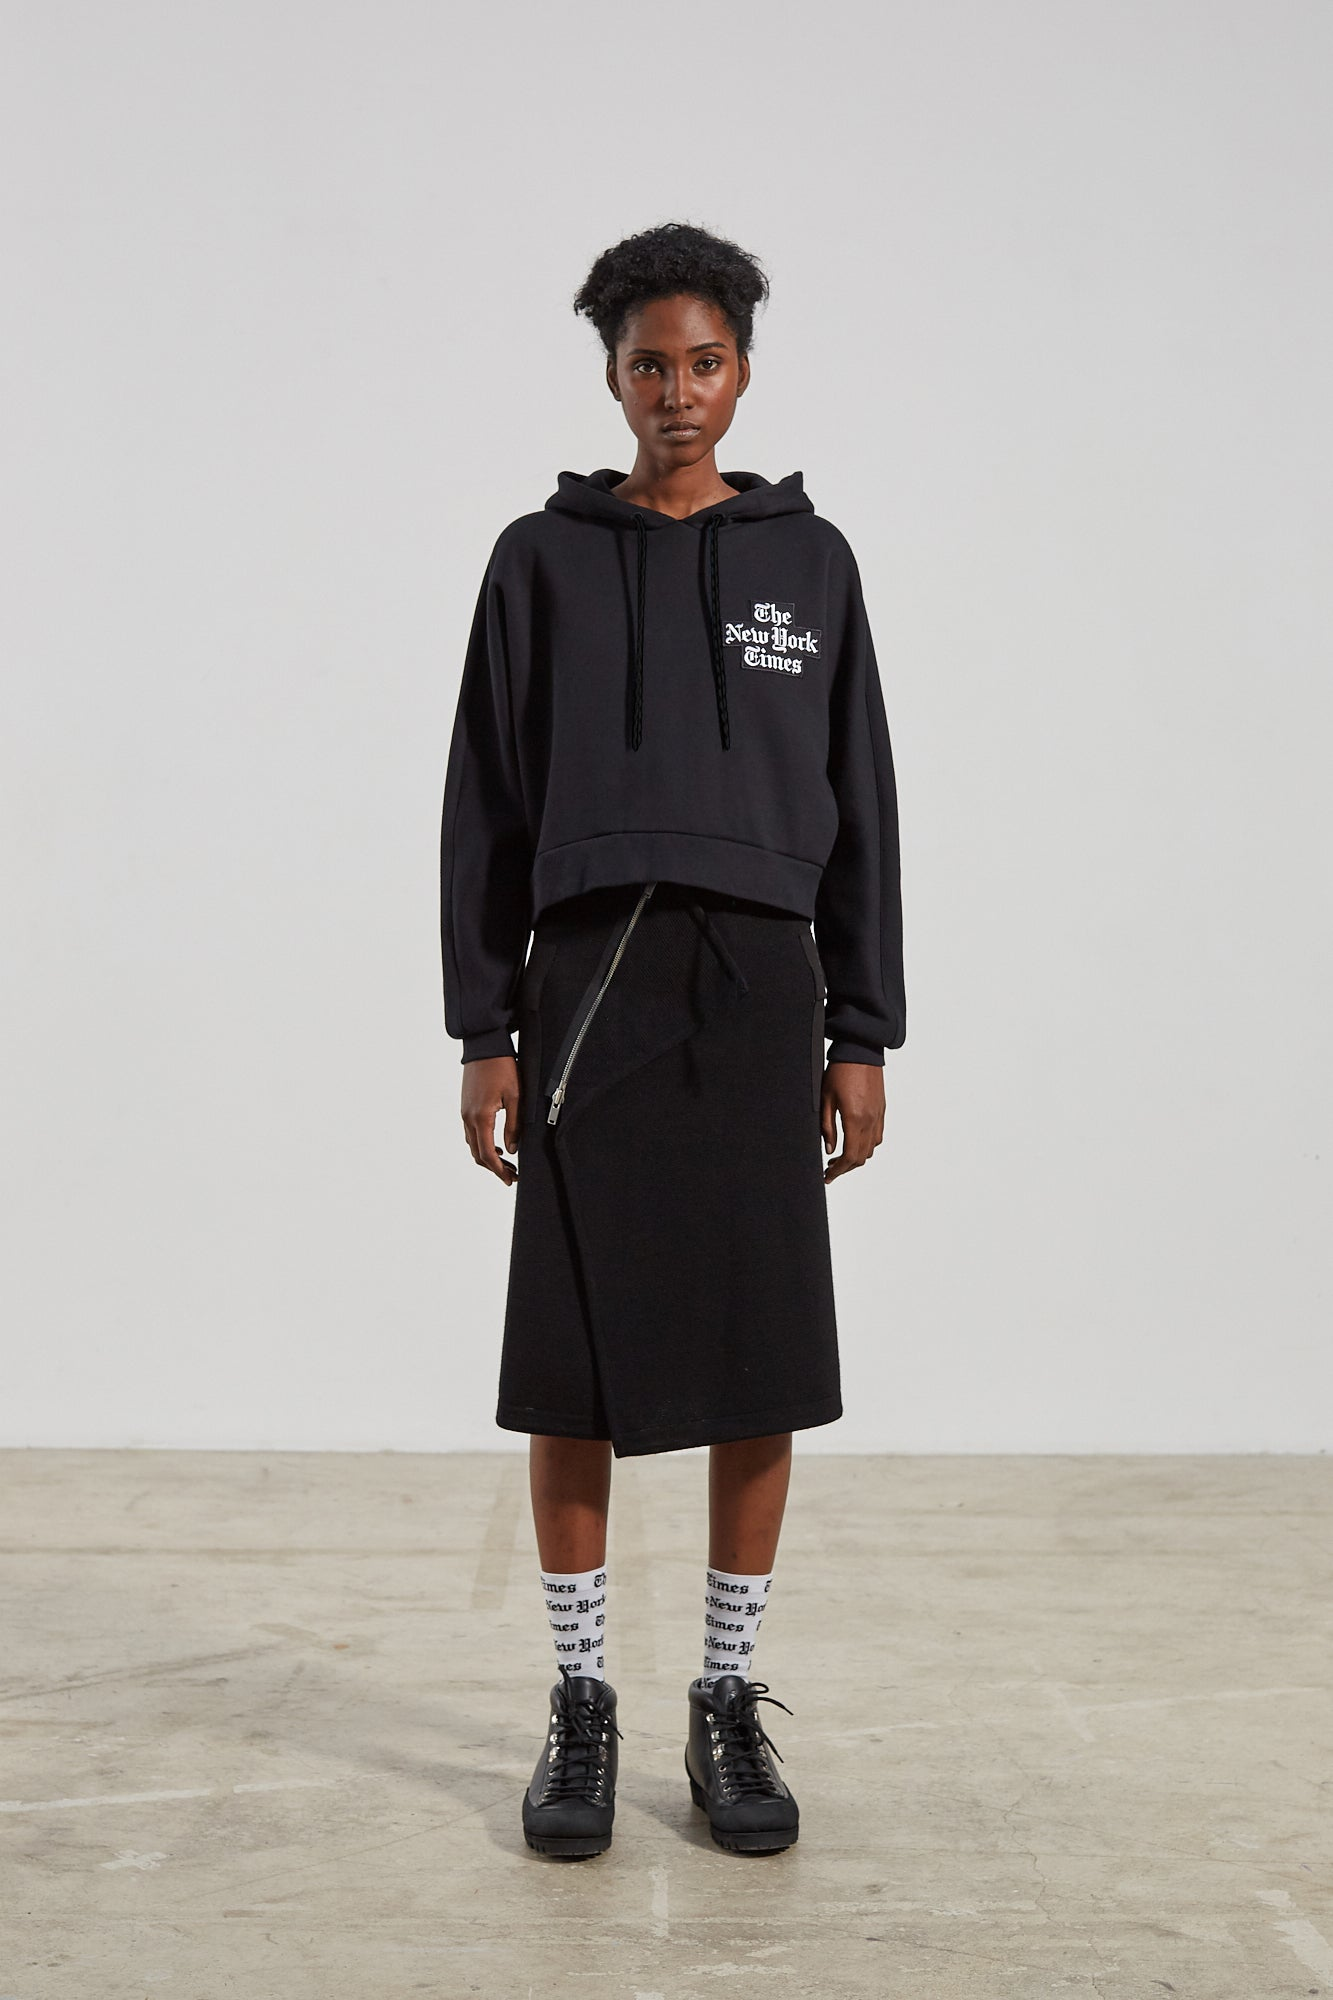 MUNDO HOODY NEW YORK TIMES